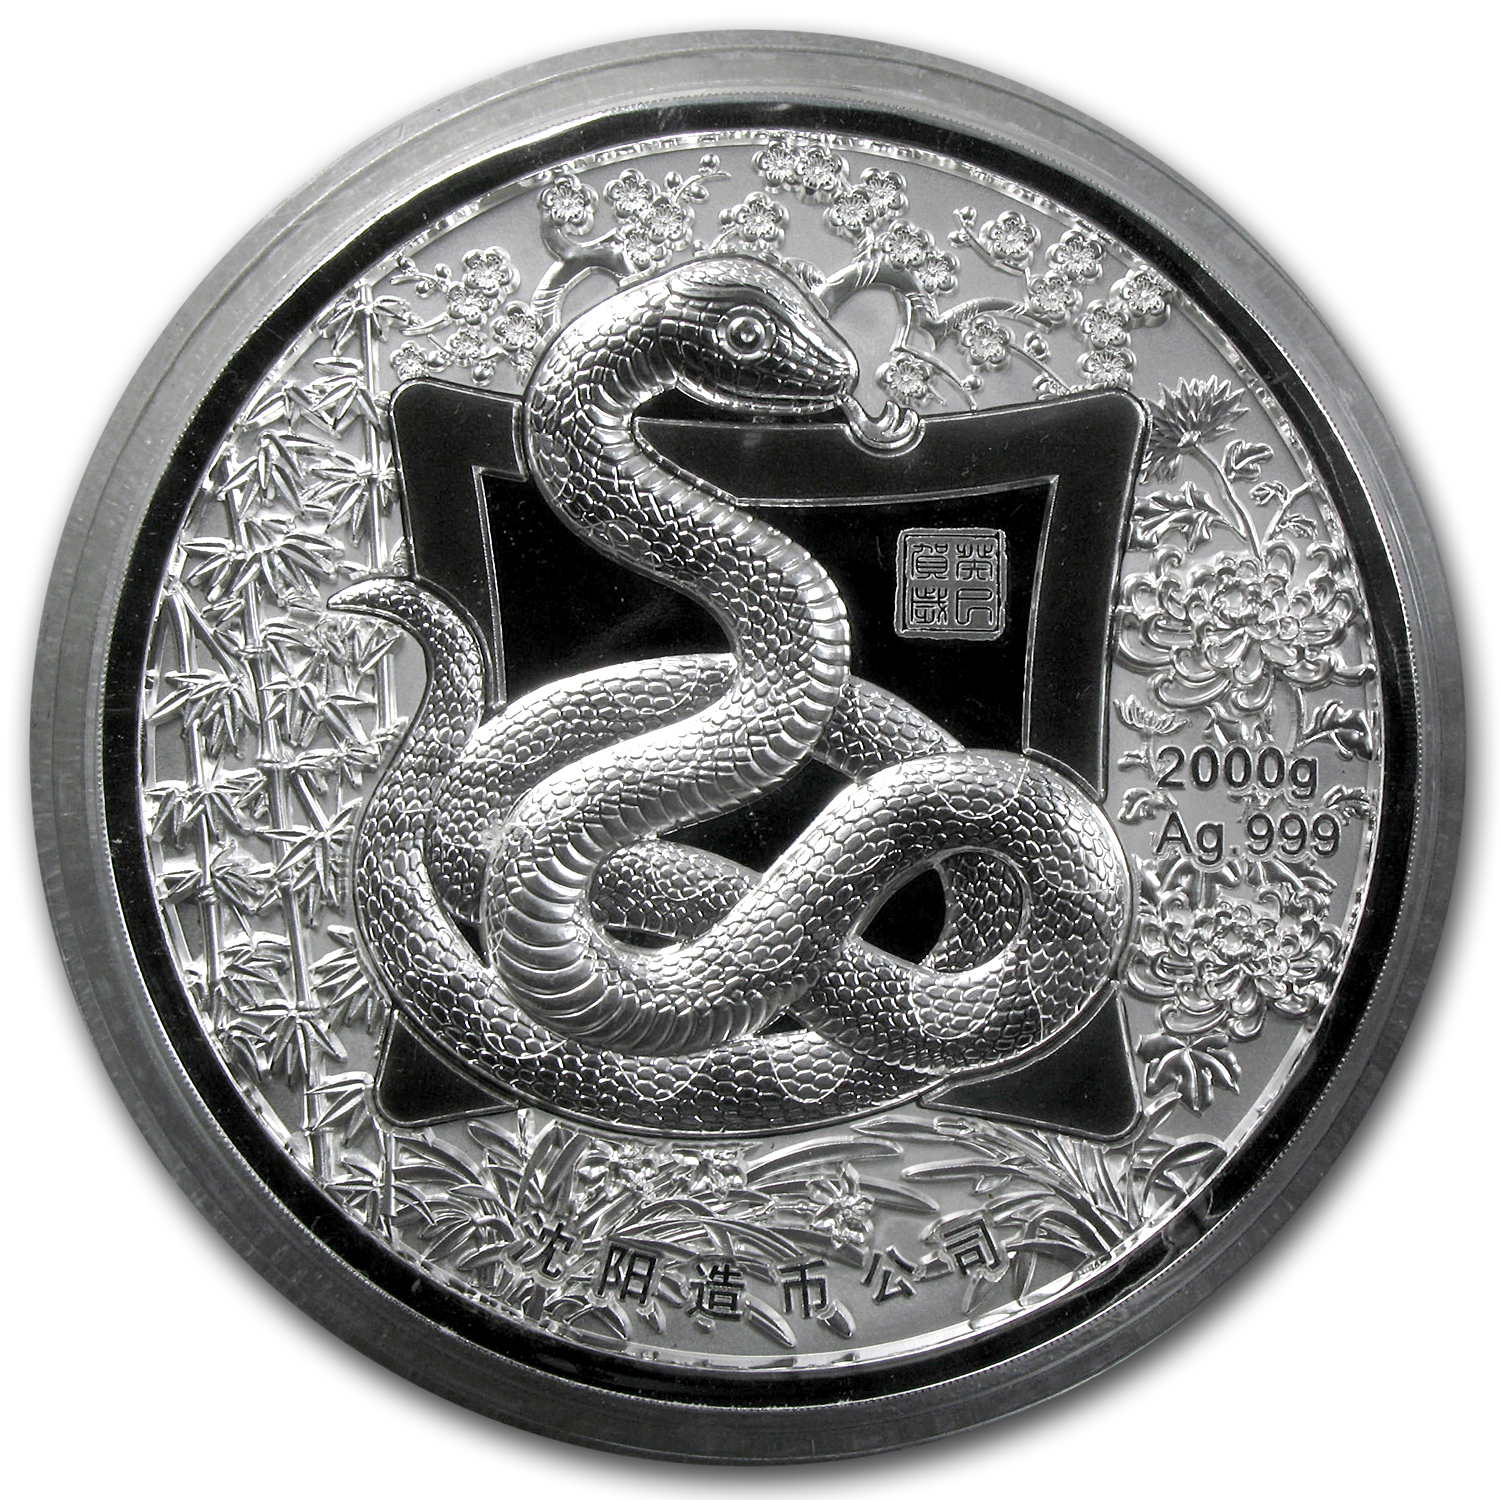 2013 2 Kilo Silver Chinese Year of the Snake